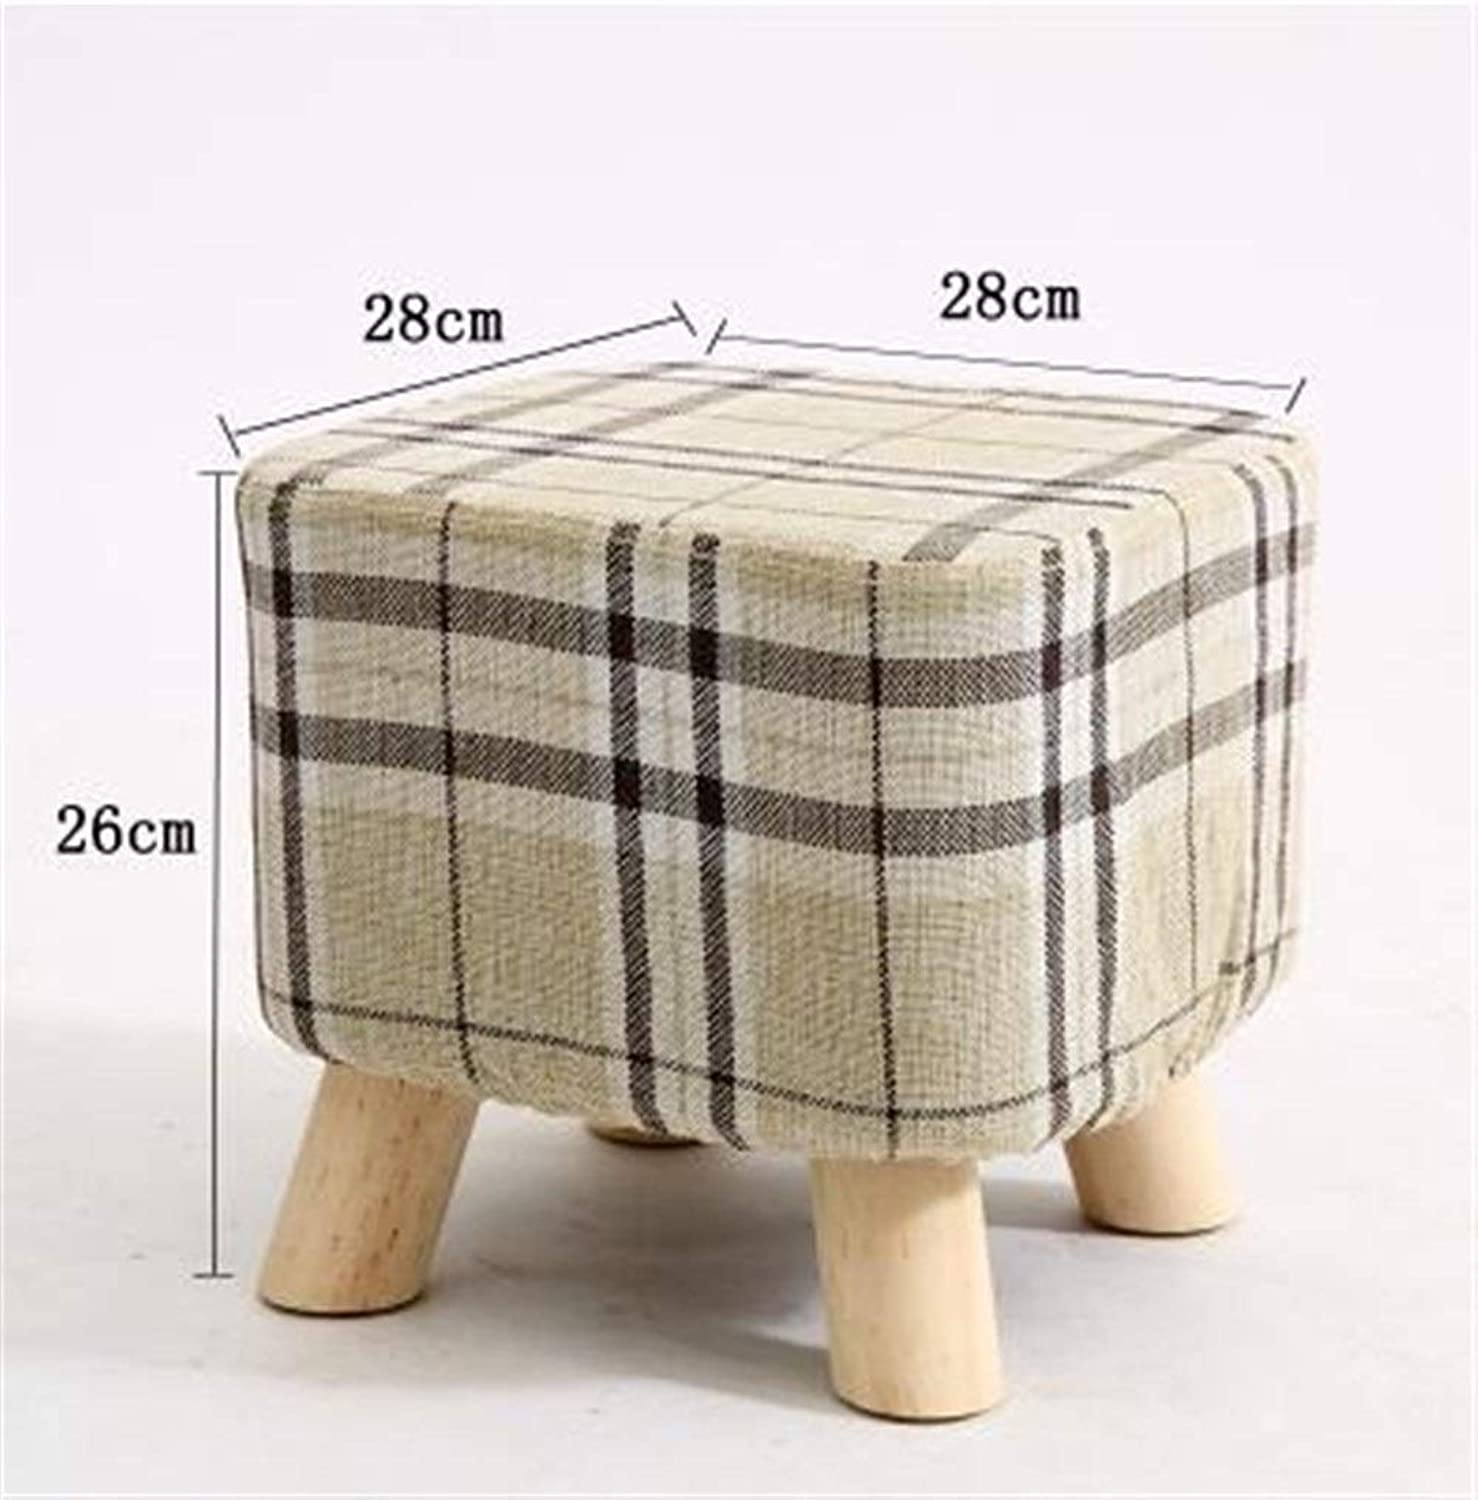 YJLGRYF Chair Upholstered Footstool Round Square Fabric Pouffe Stool 4 colors(4 Legs) (color   B2)